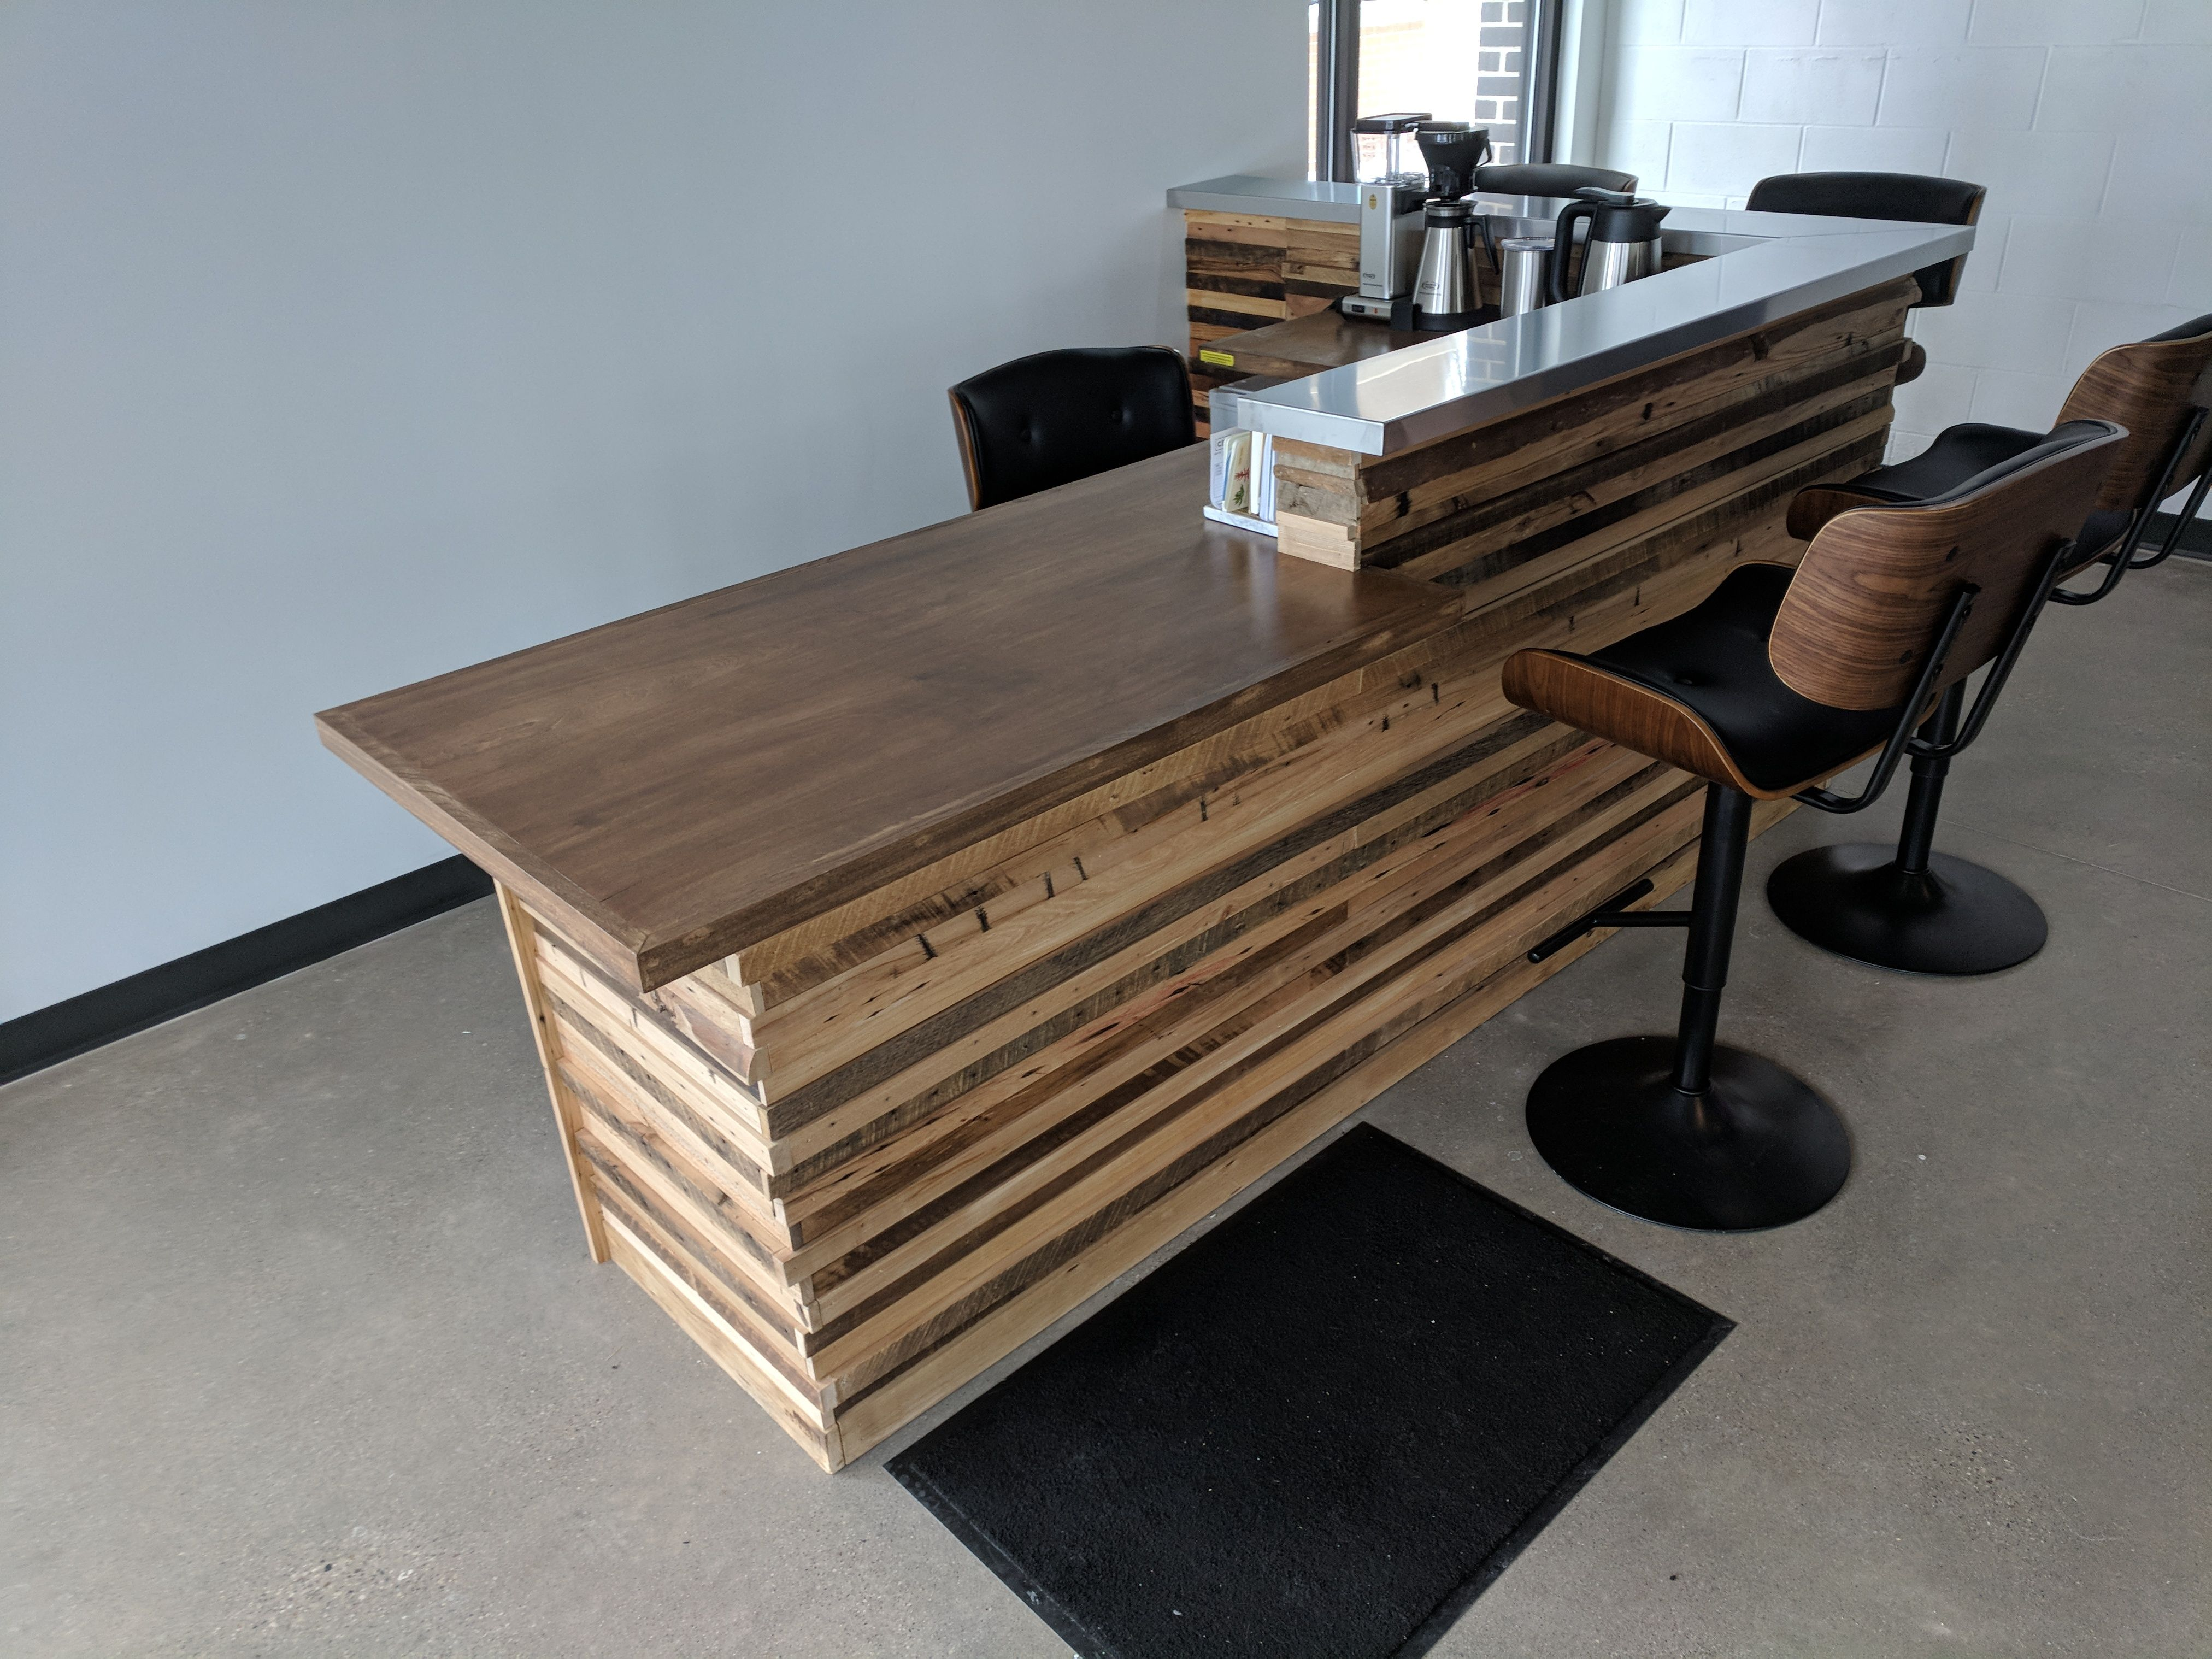 Reclaimed Wood Slat Reception Desk